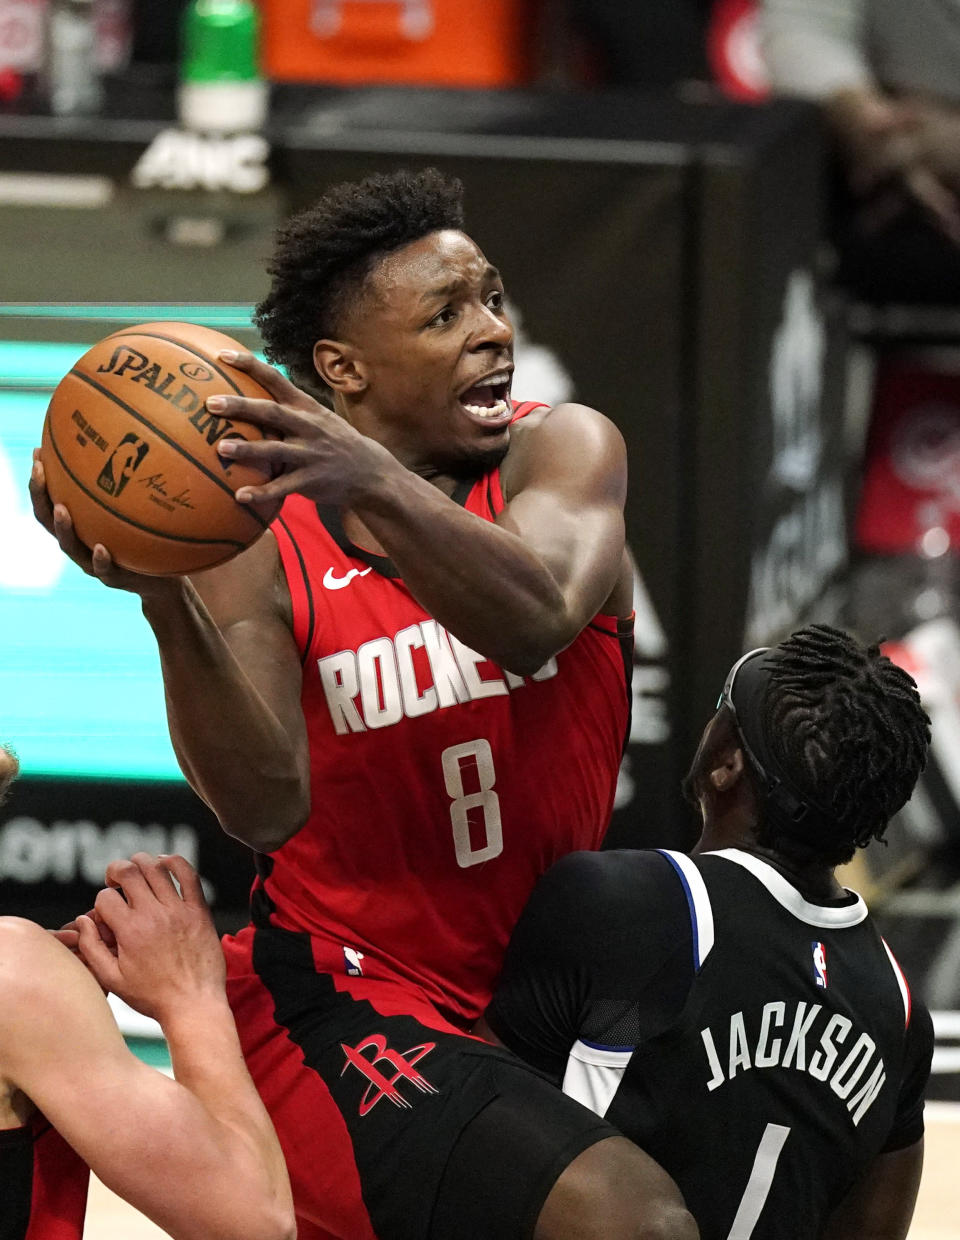 Houston Rockets forward Jae'Sean Tate, left, shoots as Los Angeles Clippers guard Reggie Jackson defends during the first half of an NBA basketball game Friday, April 9, 2021, in Los Angeles. (AP Photo/Mark J. Terrill)